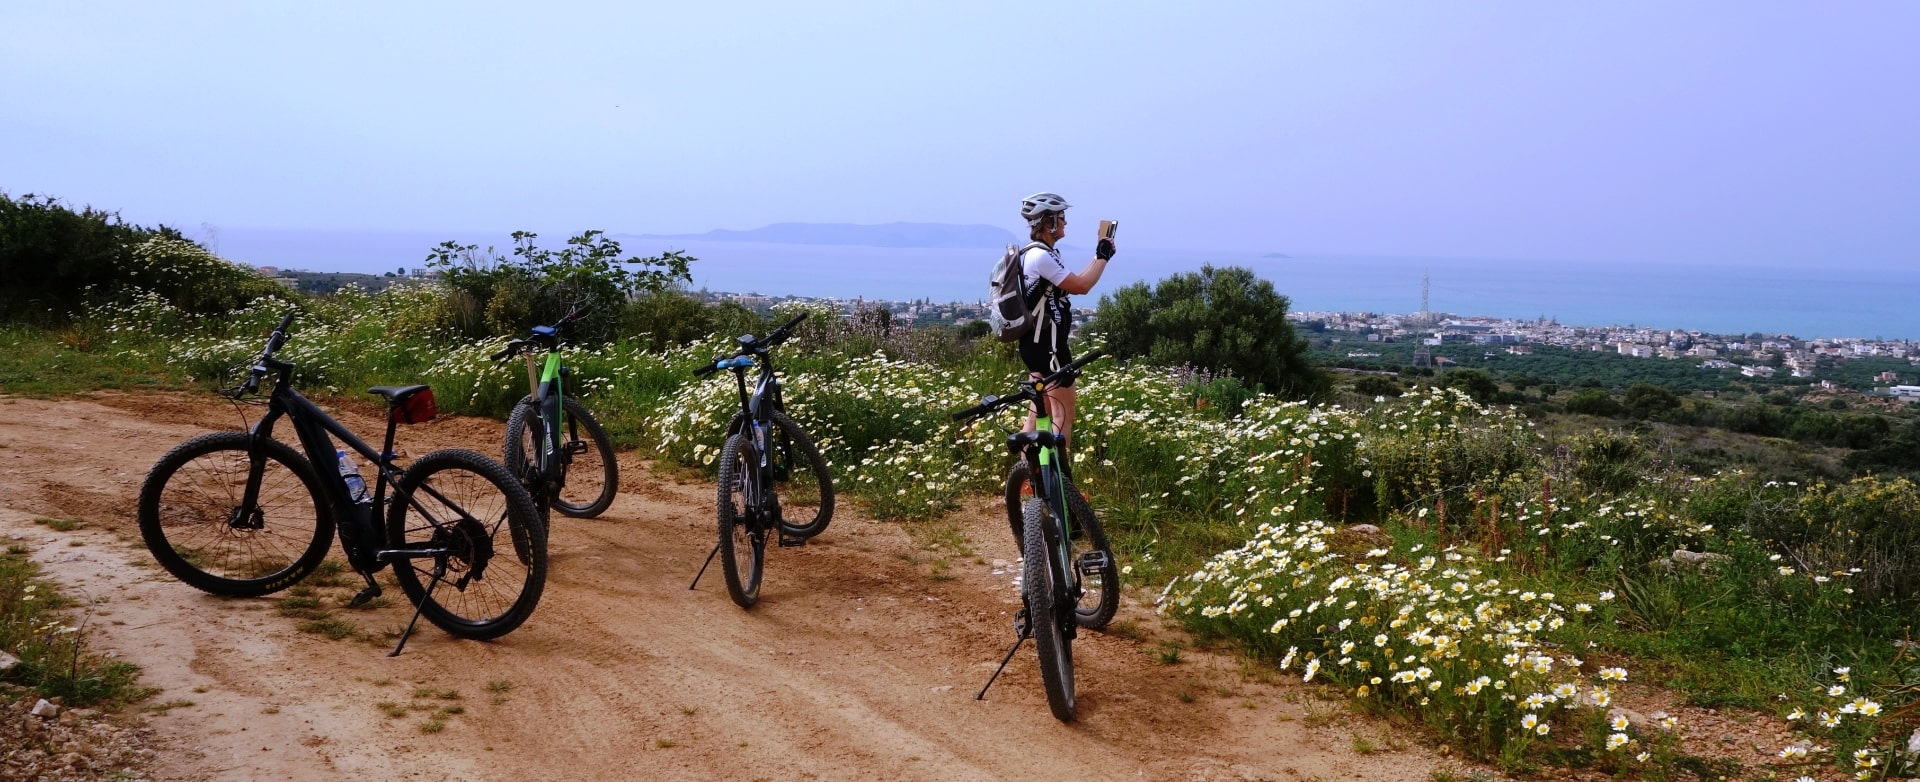 afternoon ebike tour Crete Kreta 3 hours easy bike tour create the best memories of your vacation-min